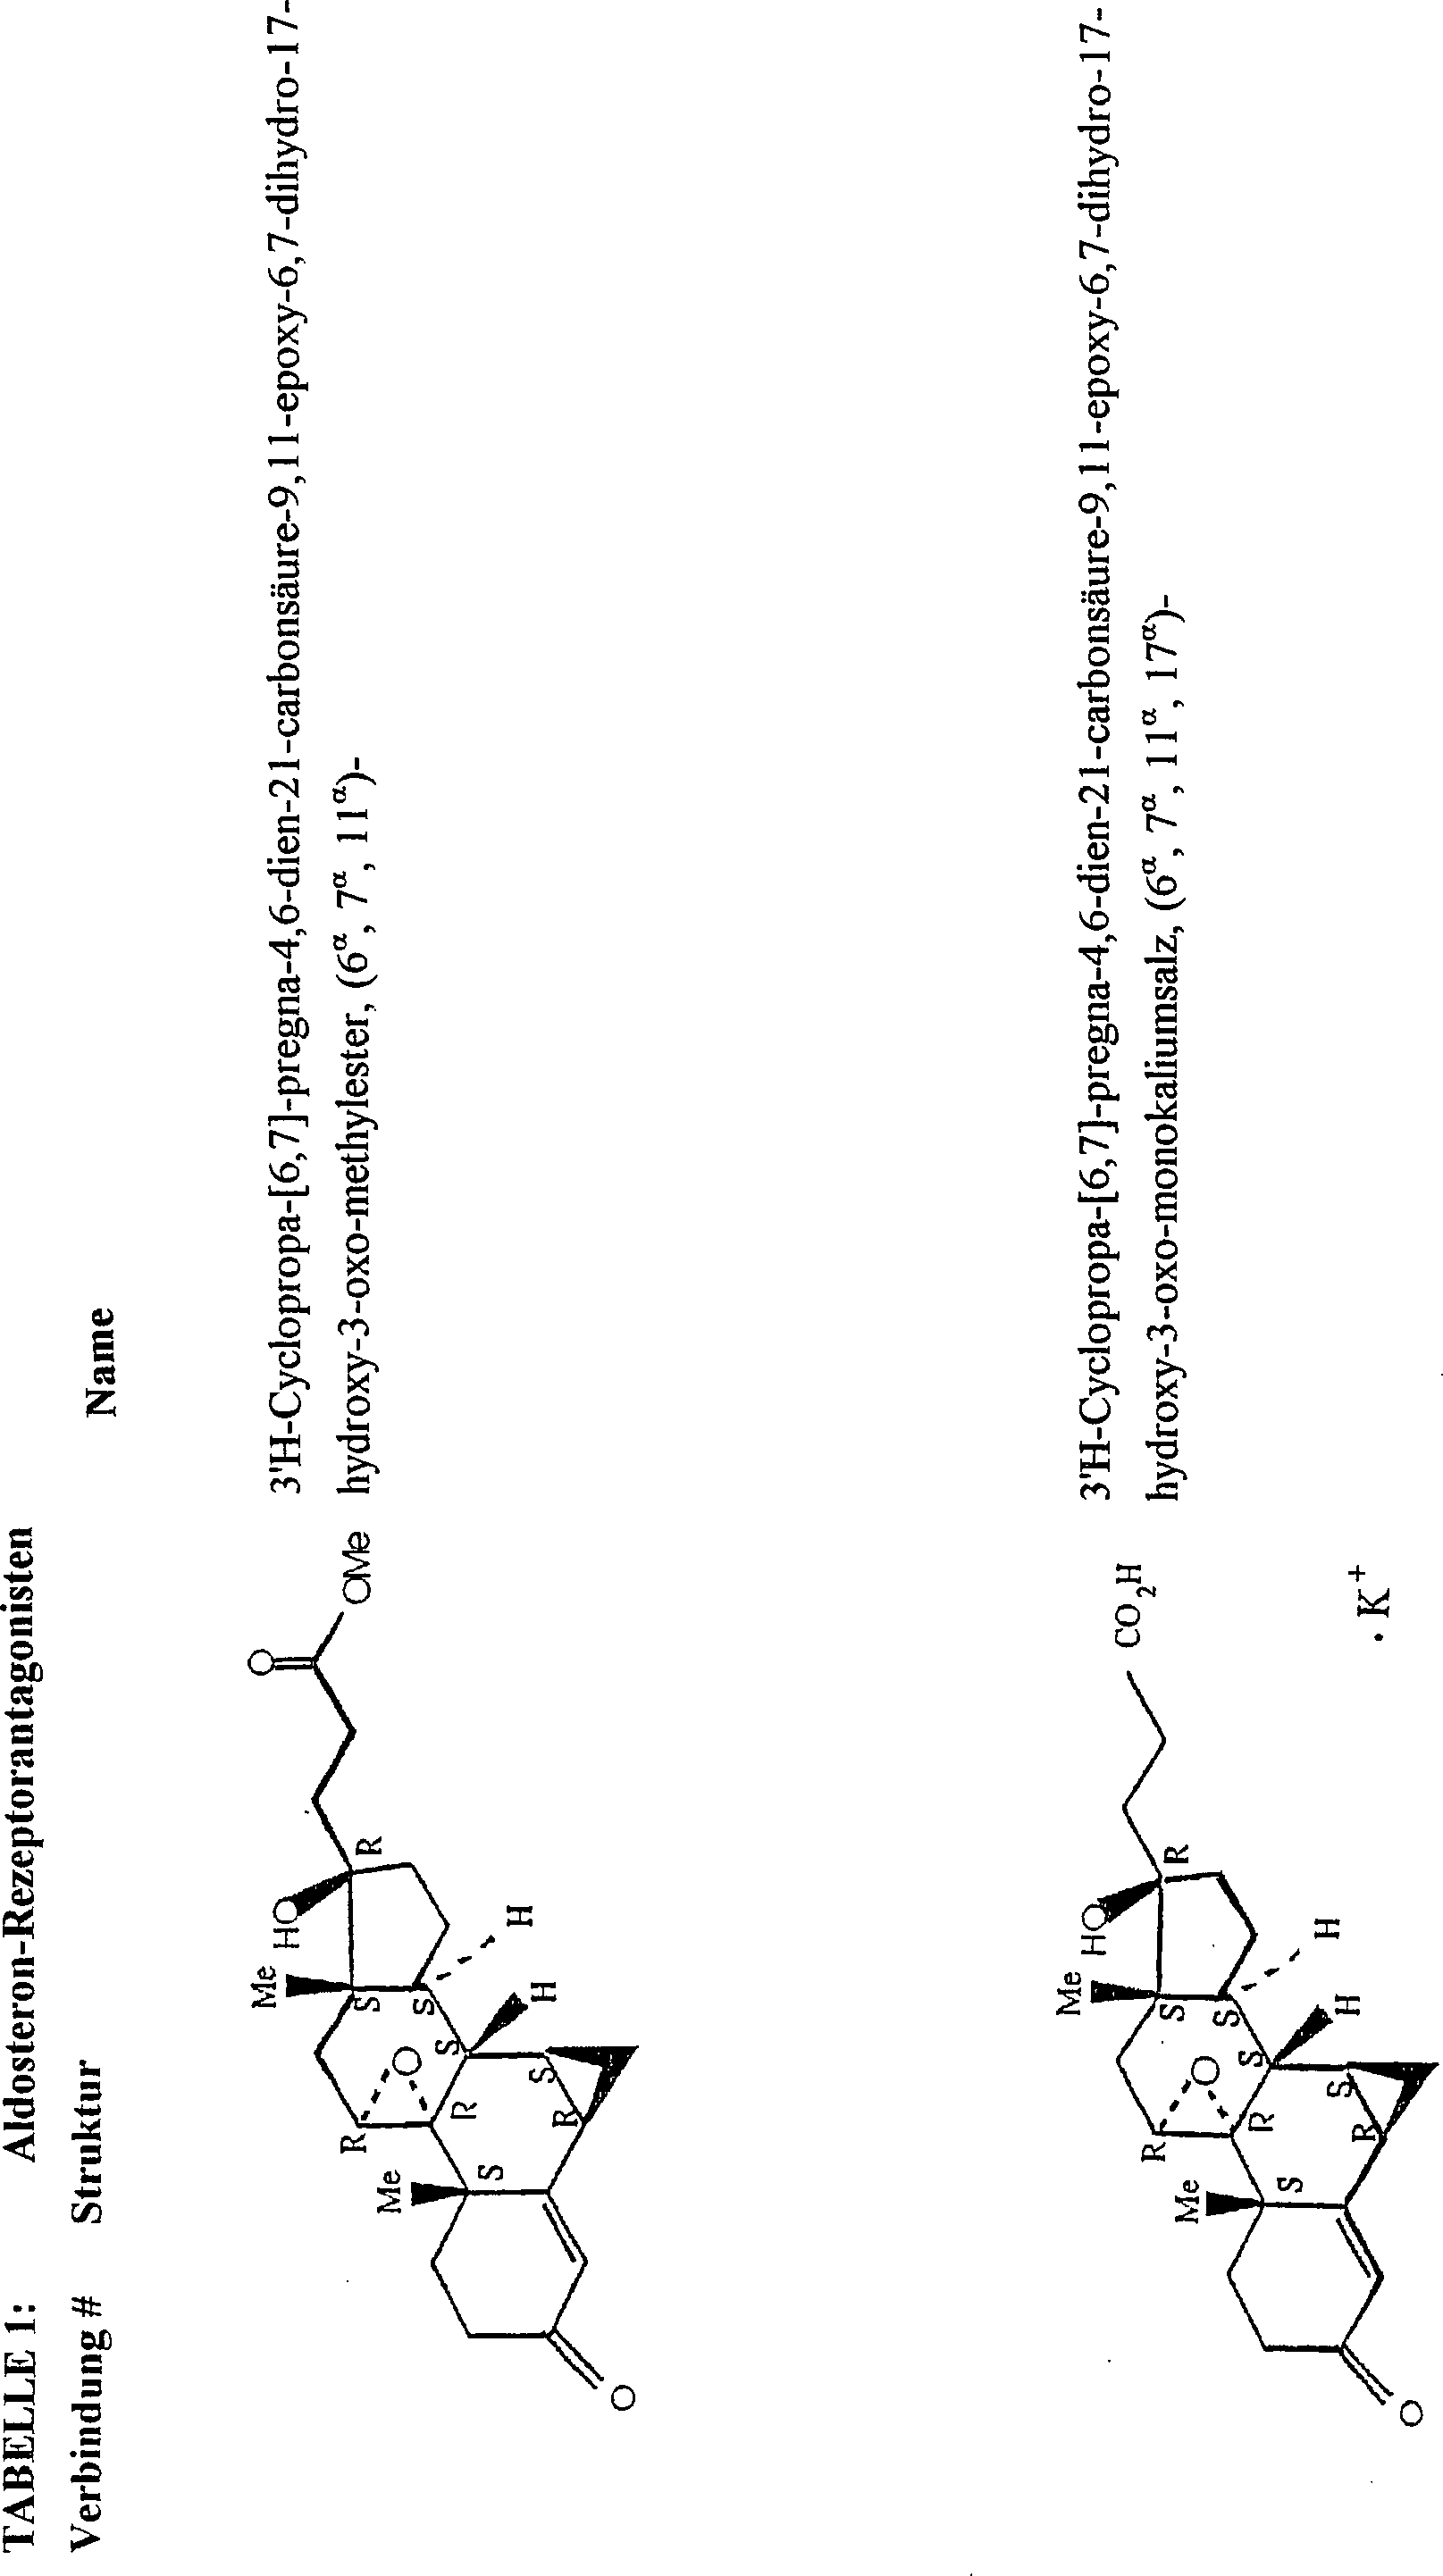 DE60005159T2 - Combination therapy of angiotensin-converting enzyme ...